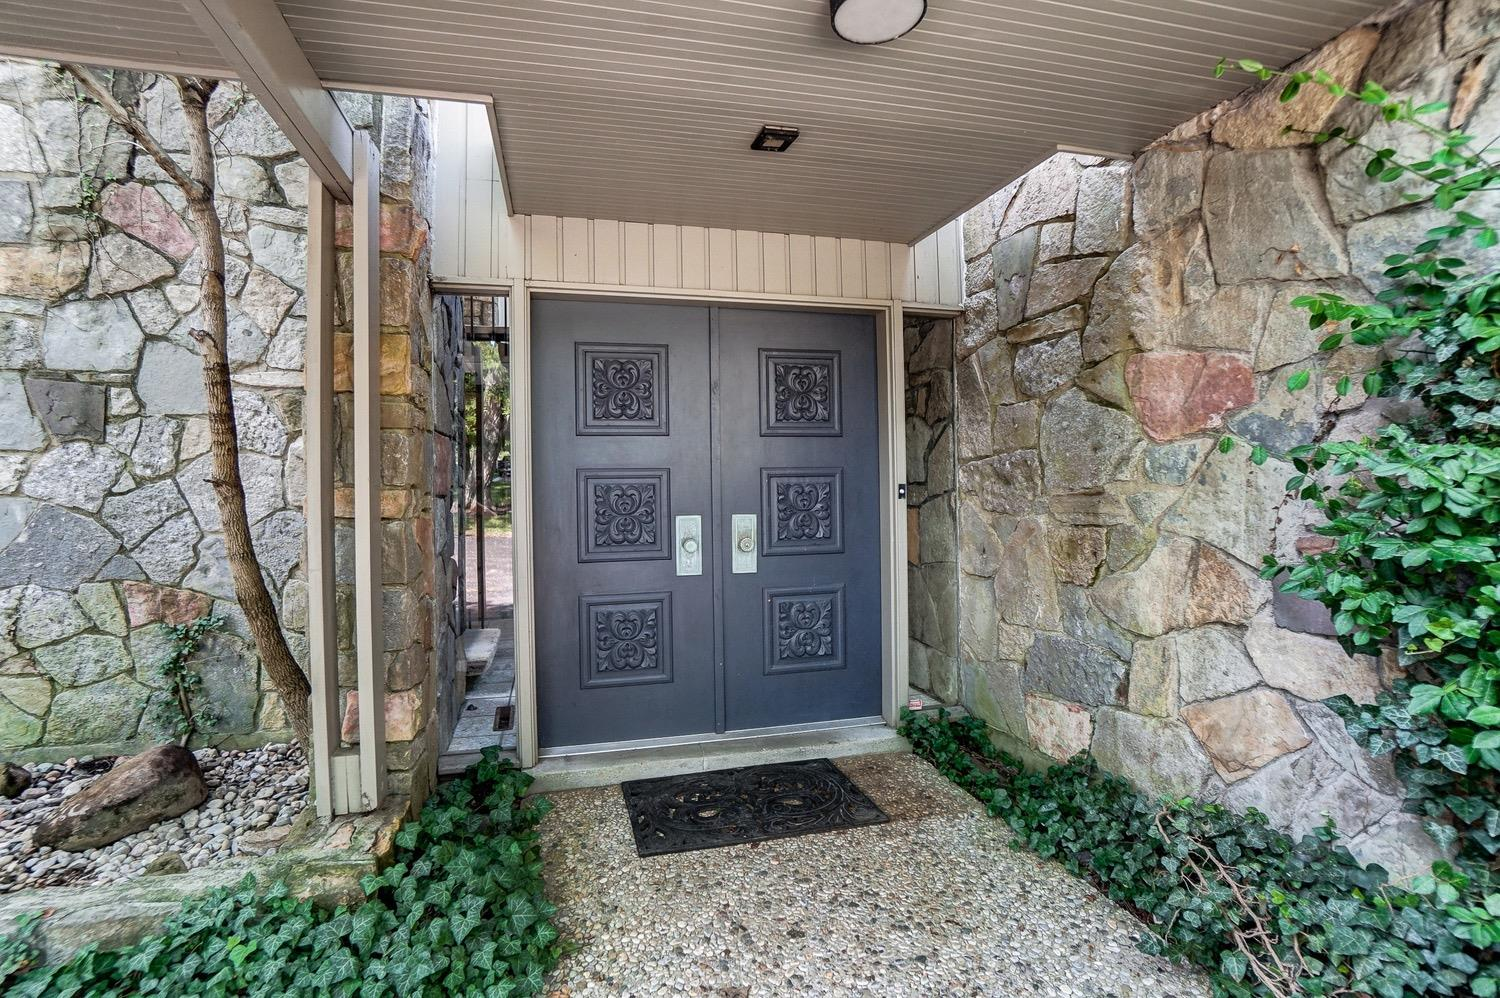 Contrasting stone and wooden board and batten siding welcome you to the home's entry. Note the glass side lights are expertly scribed directly to the edges of the stone walls.